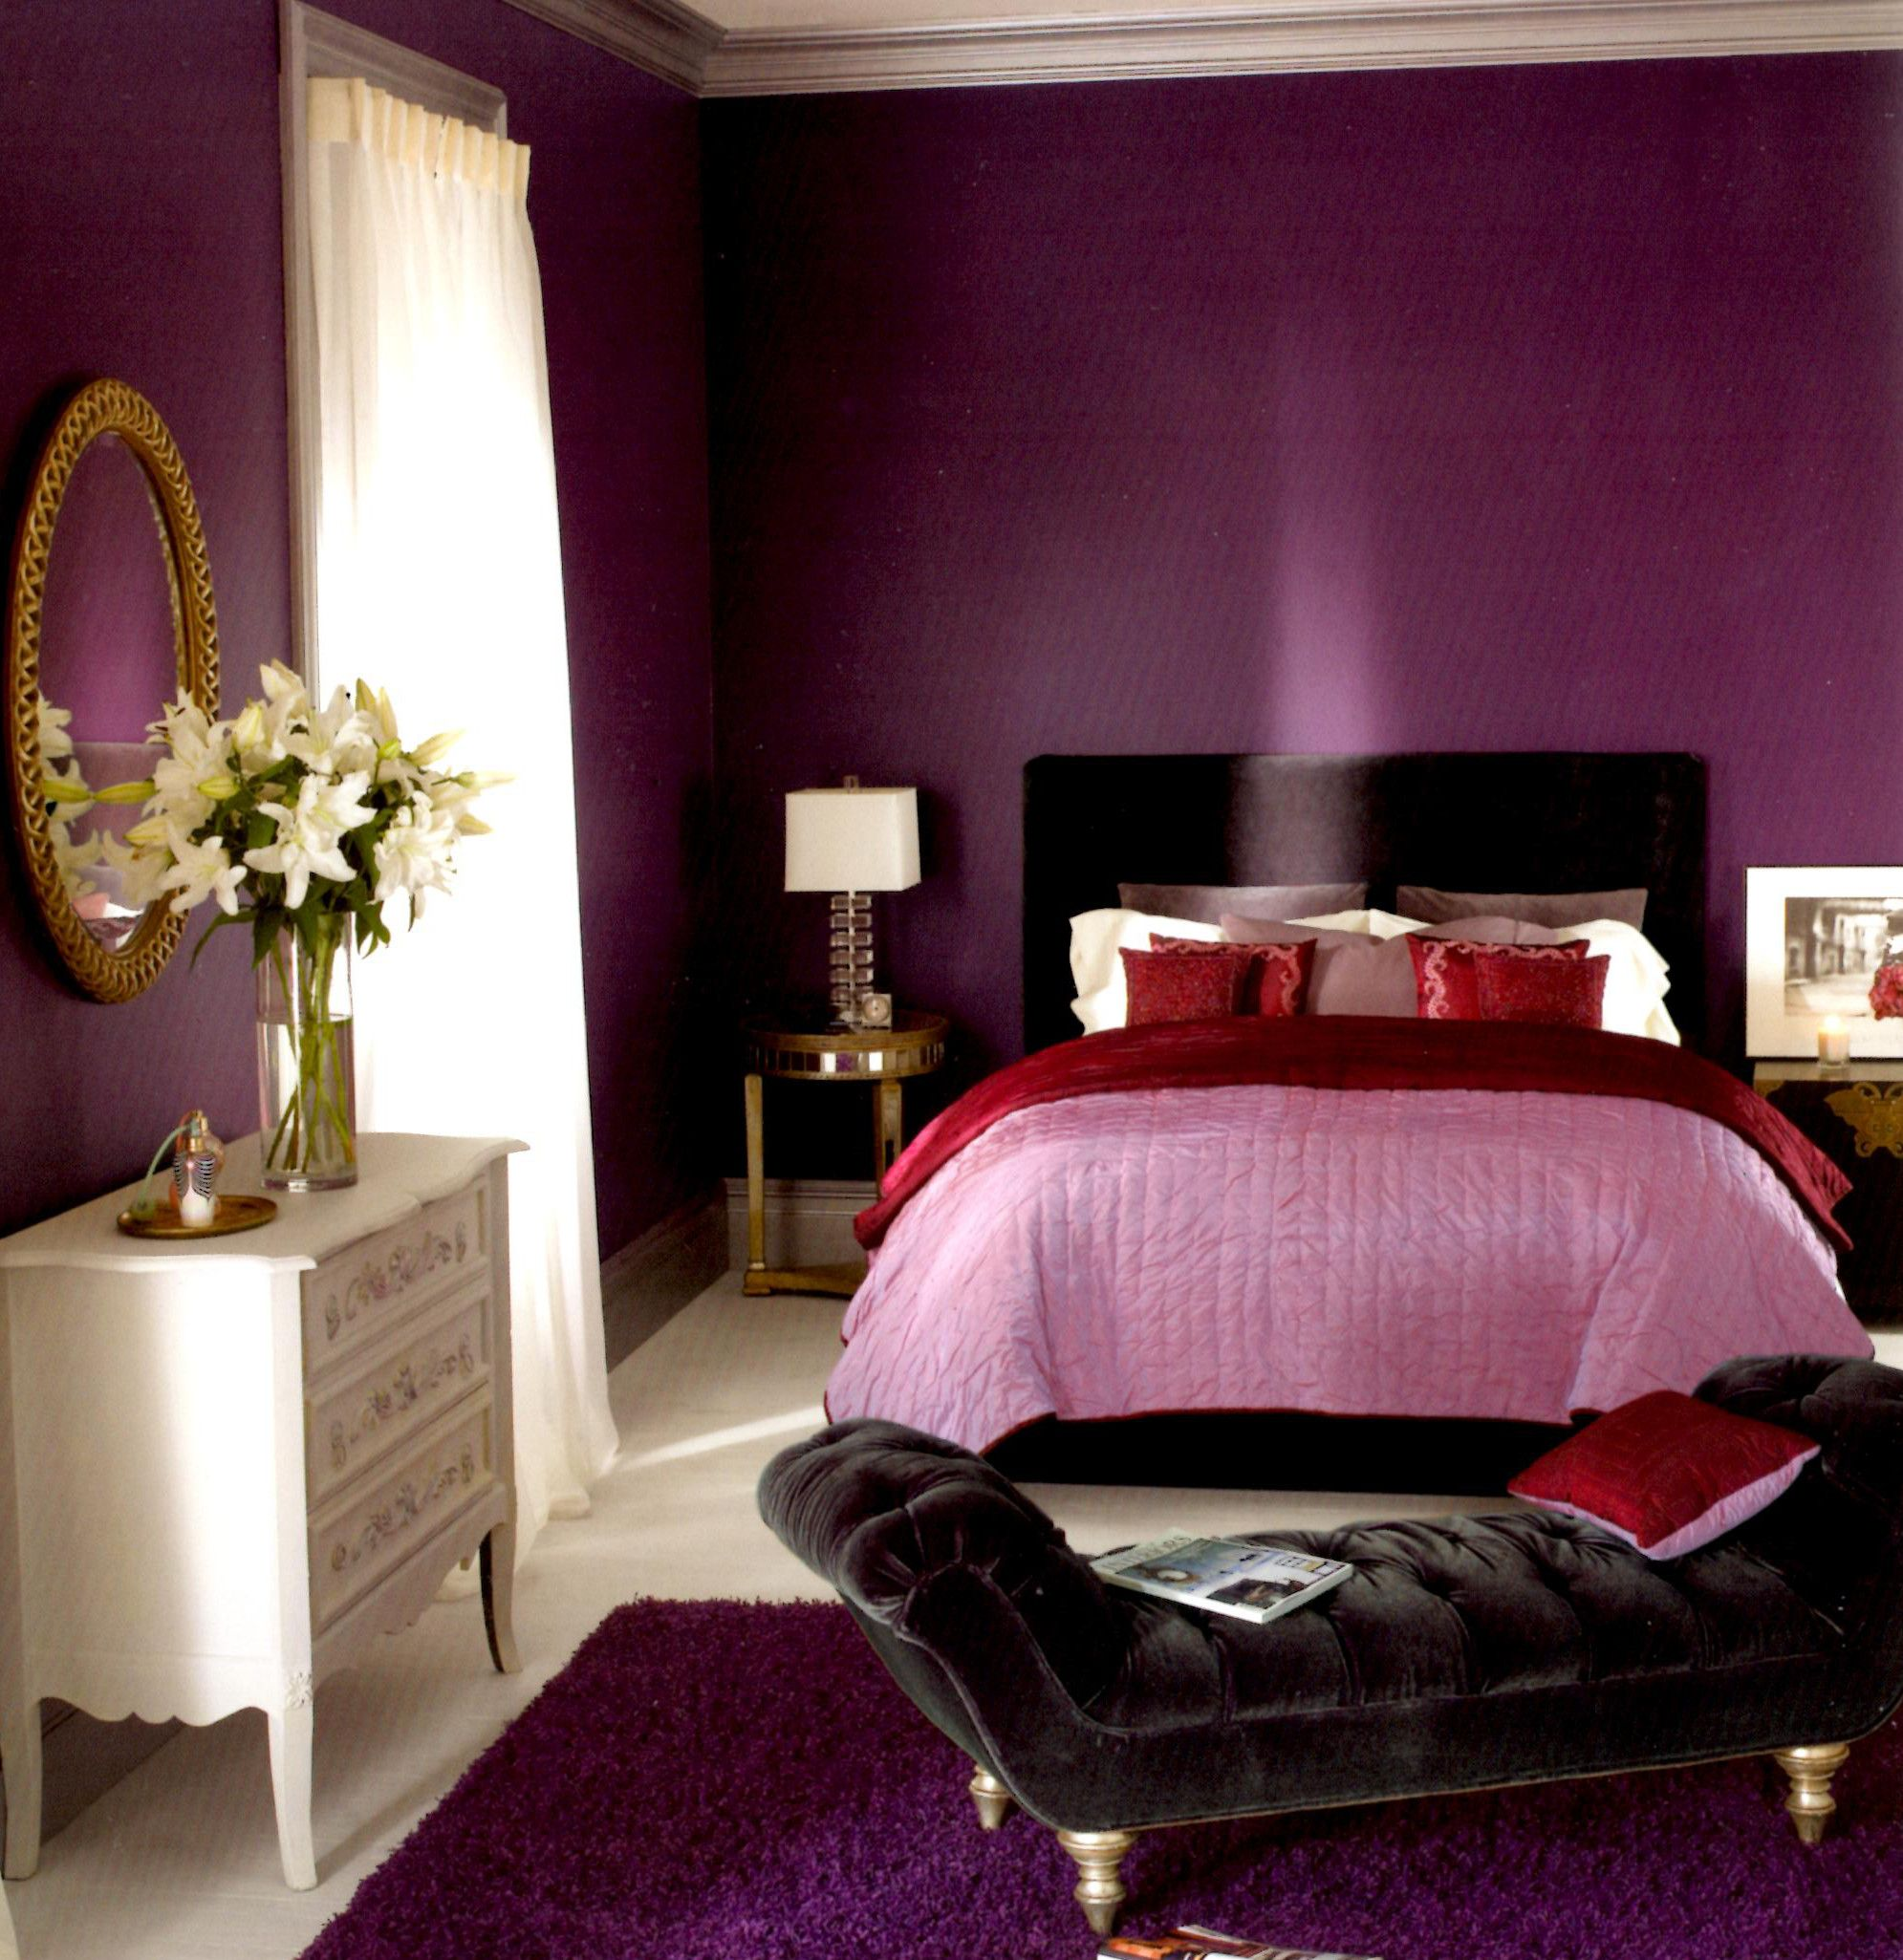 Remarkable Purple Wall Paneling Colors As Smart Bedroom Paint Ideas In  Teenage Bedroom Decor Also White. Remarkable Purple Wall Paneling Colors As Smart Bedroom Paint